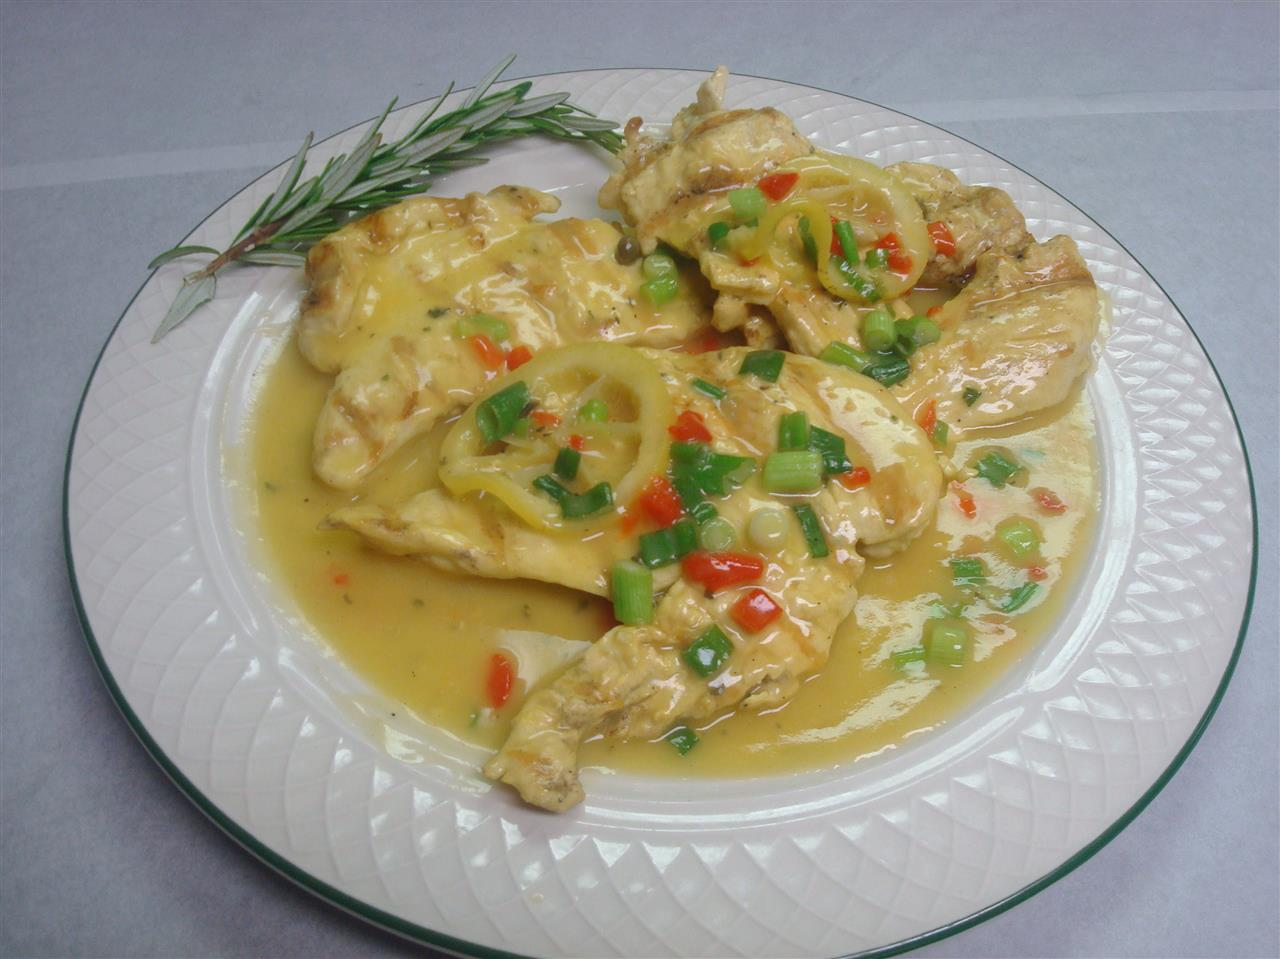 Grilled Chicken Picatta